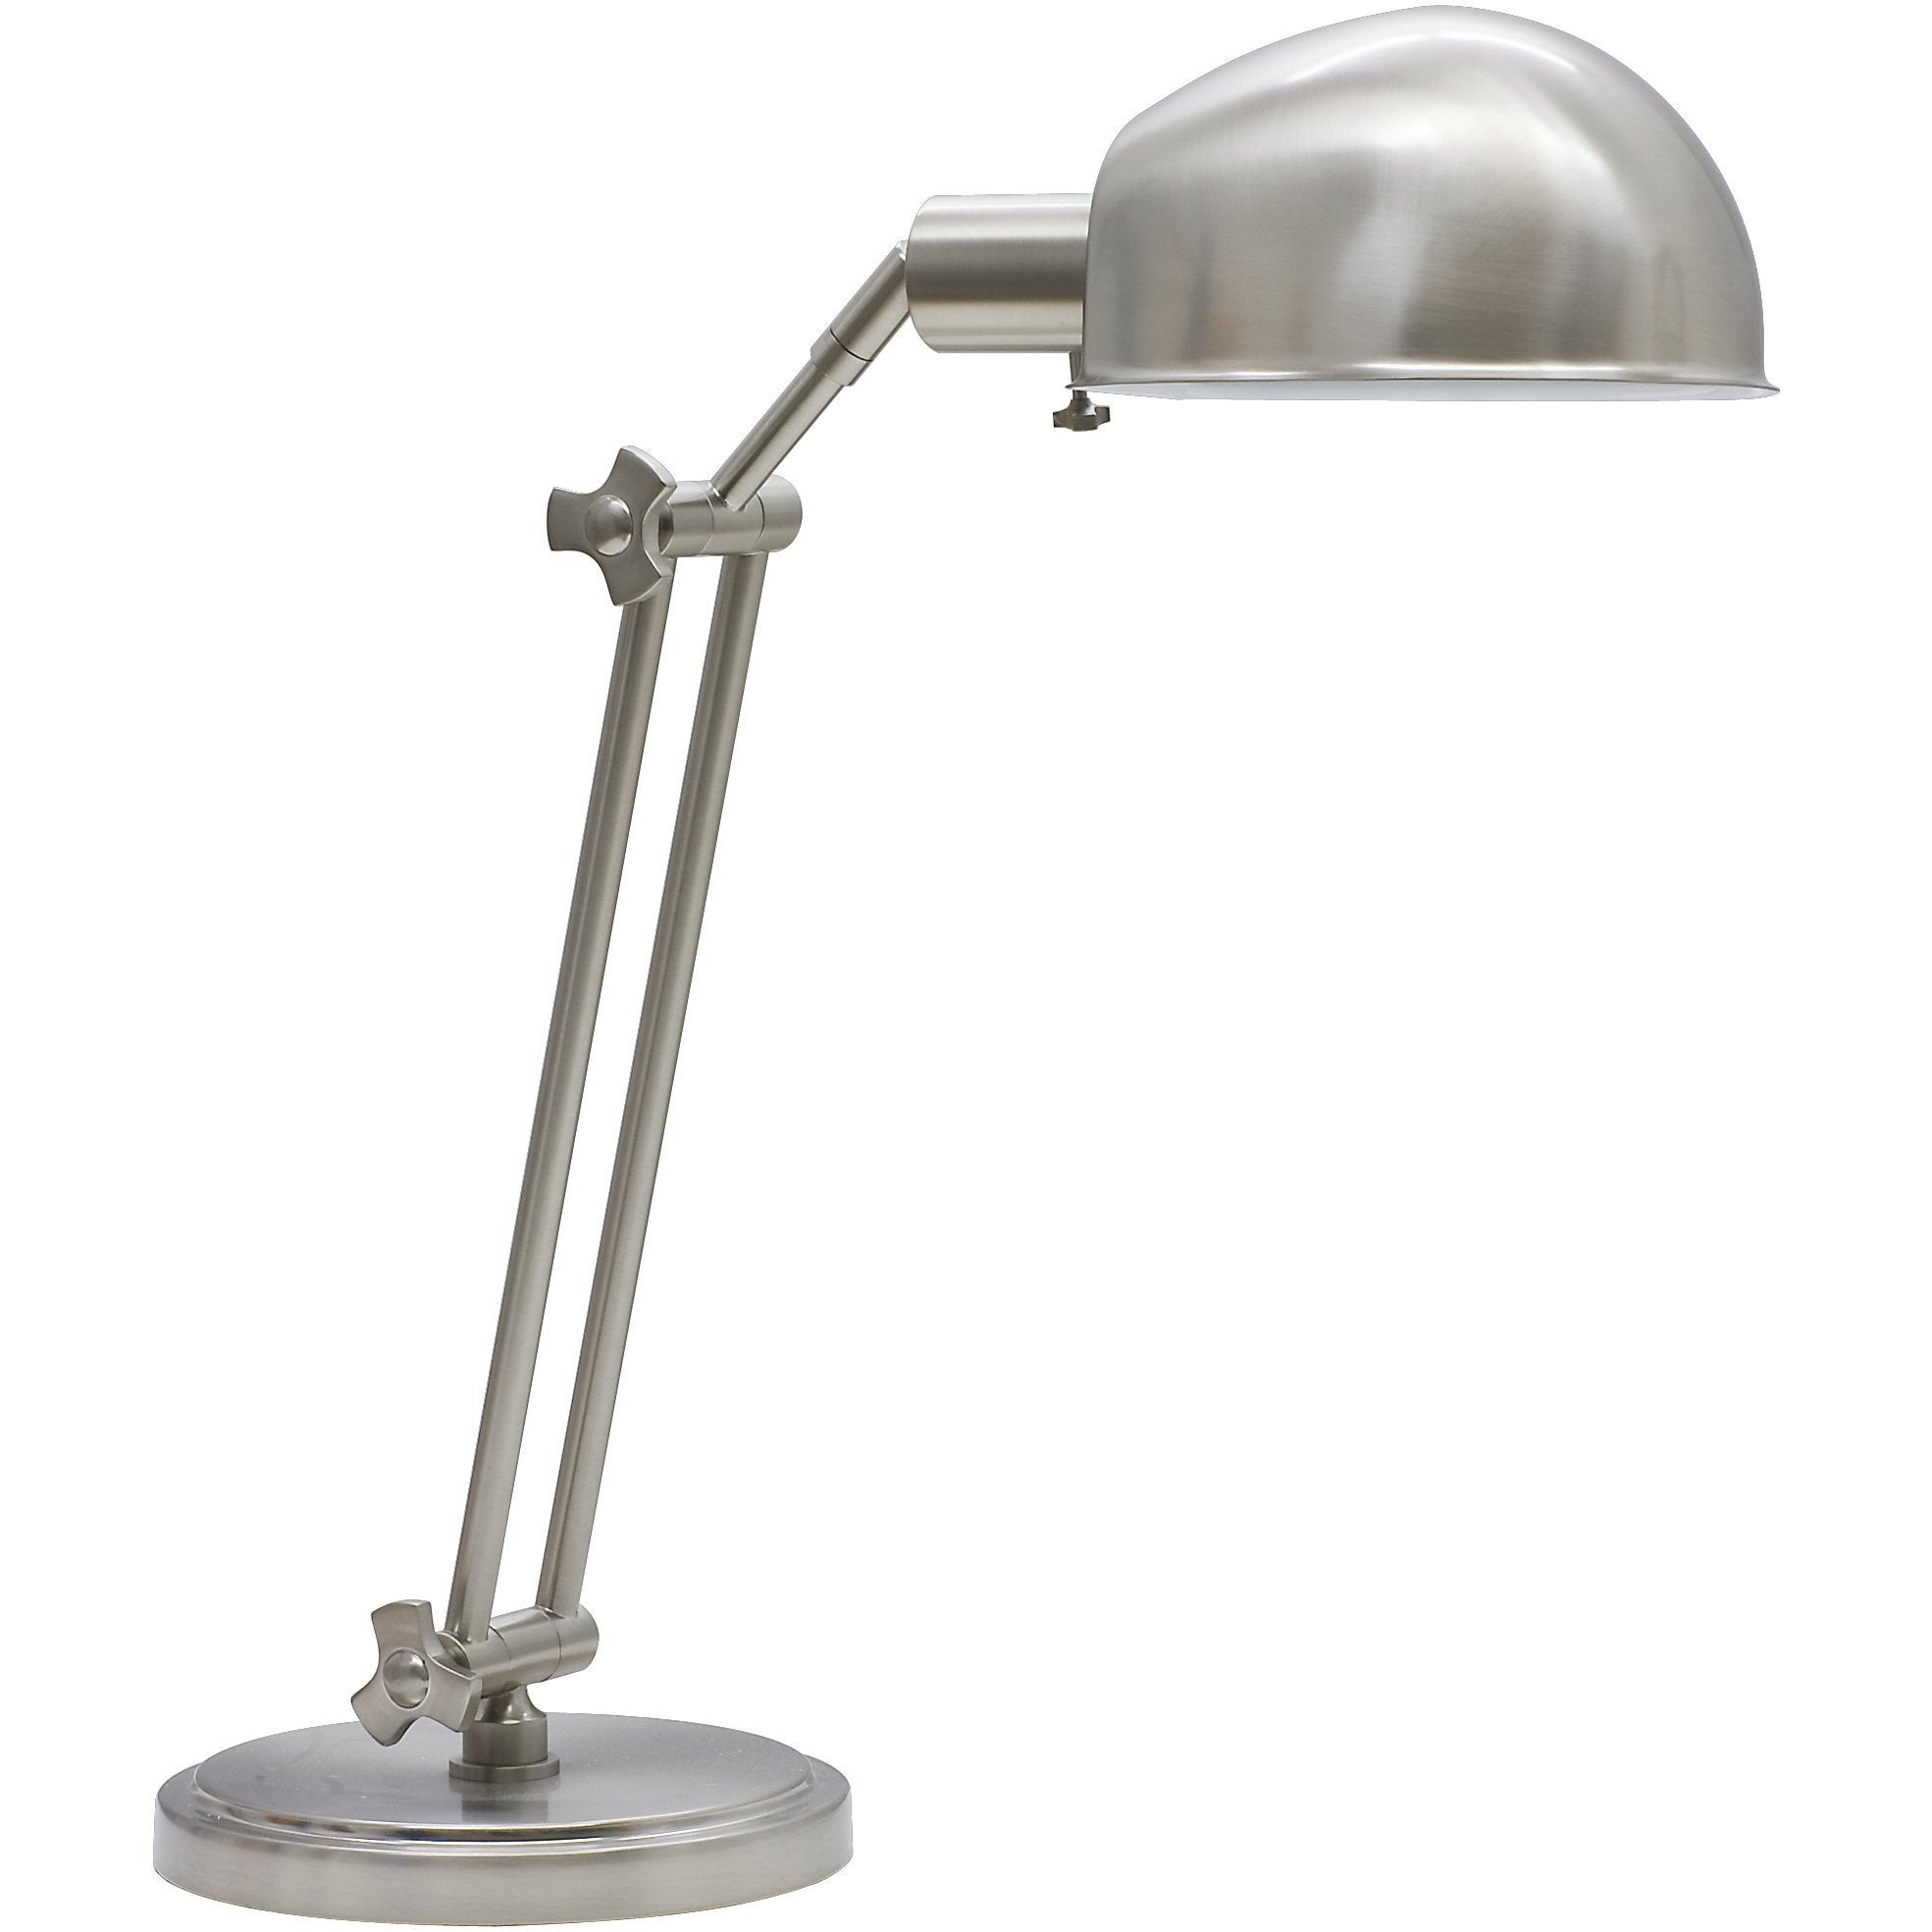 House Of Troy Table Lamps Addison Adjustable Pharmacy Desk Lamp by House Of Troy AD450-SN